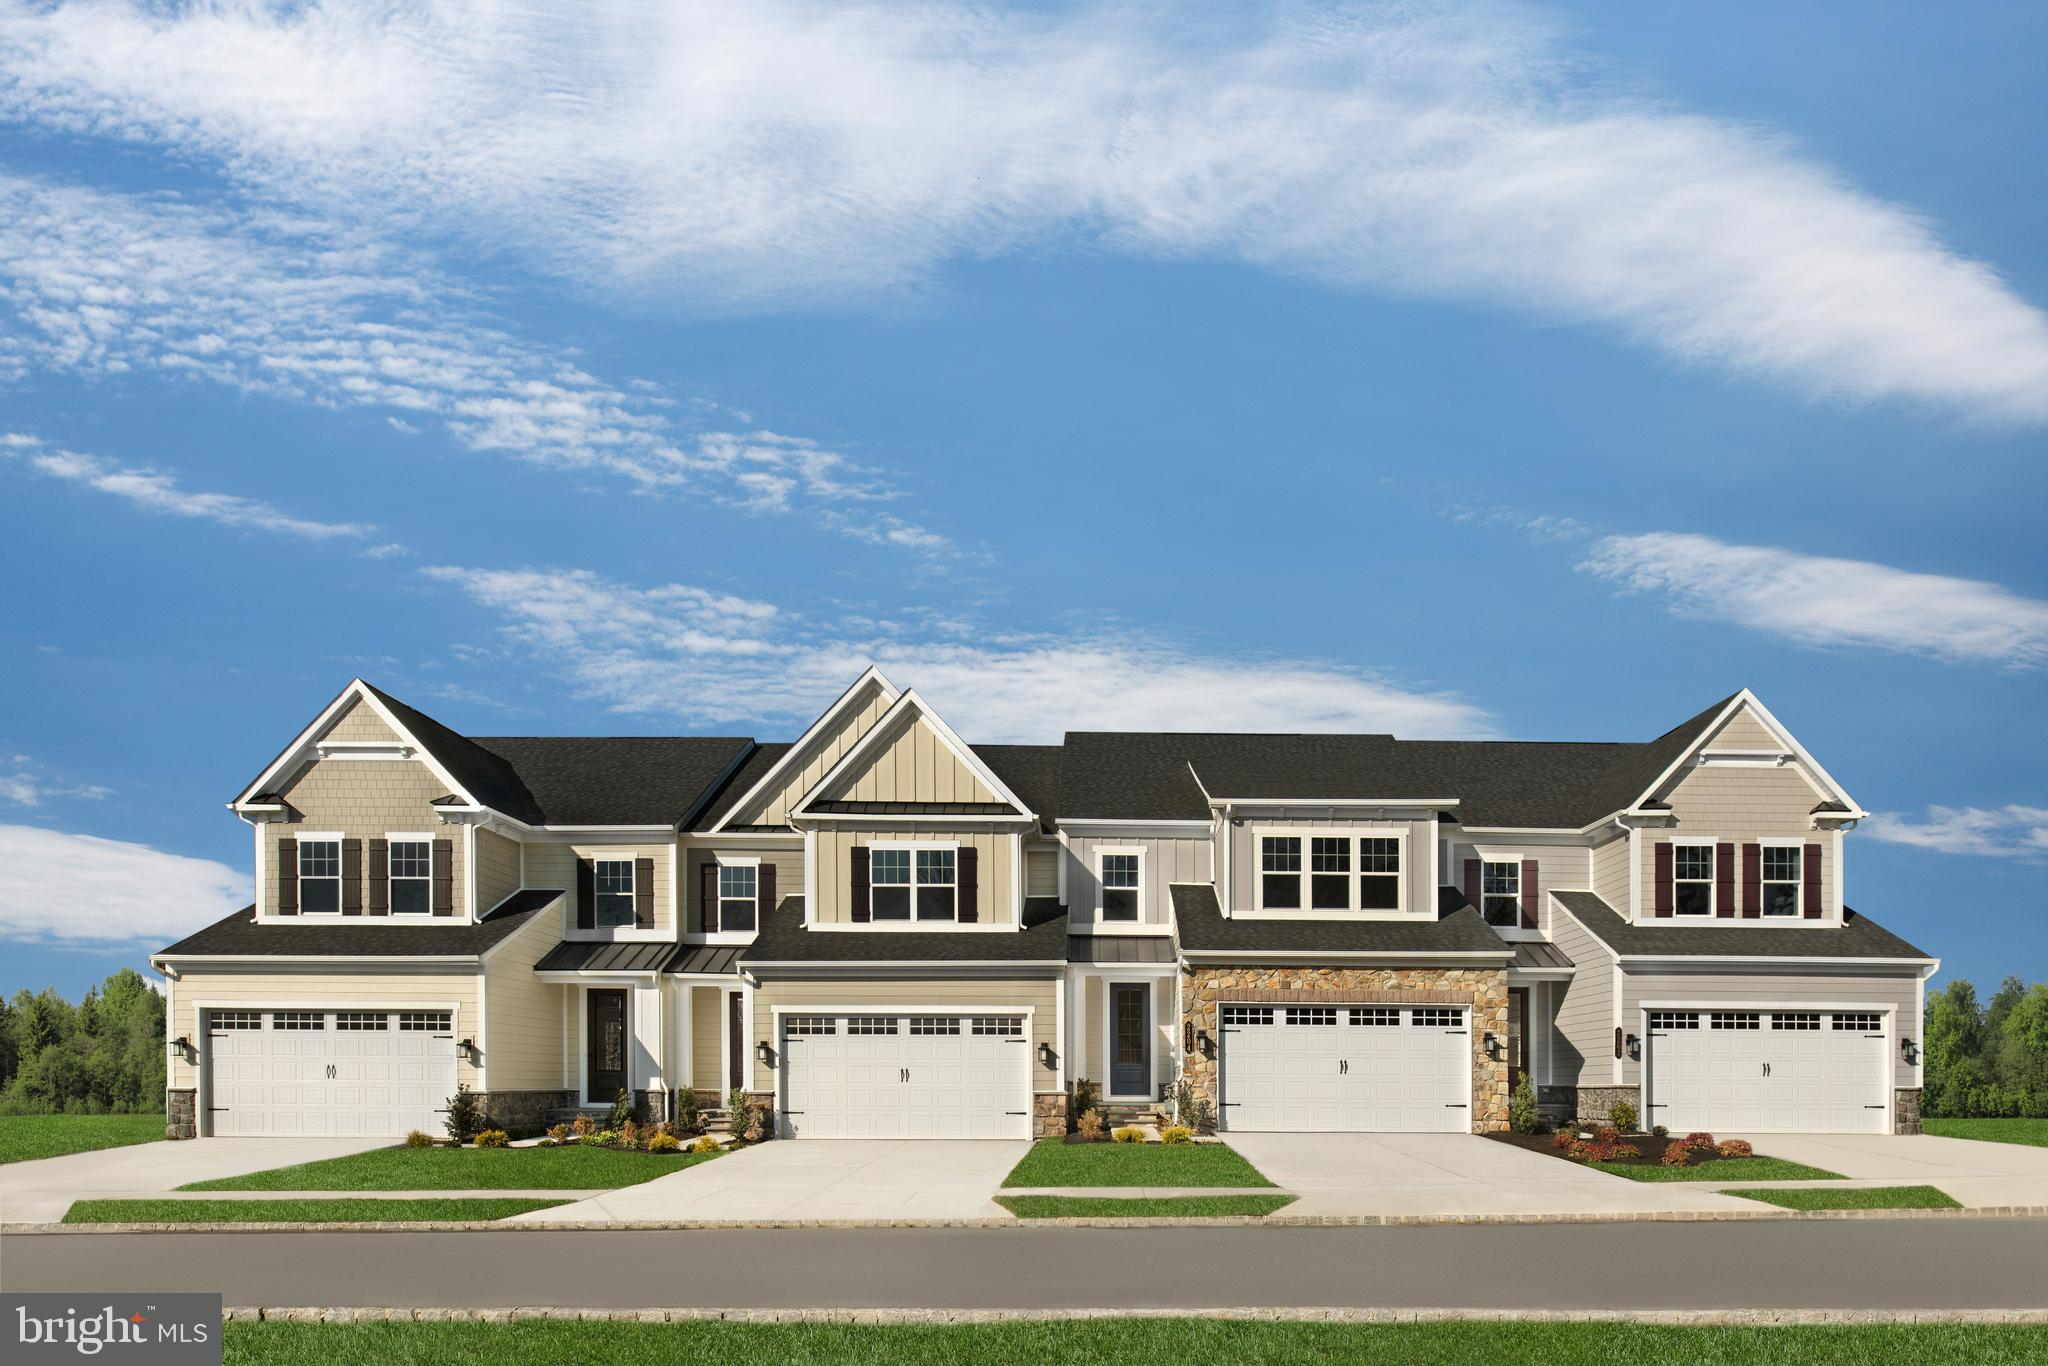 Welcome to Greystone by NVHomes , a community that more than 90 people have already decided to call home! Luxury twin and townhomes in a spectacular estate setting! Luxury twin and townhomes in a spectacular estate setting near Rt. 100, 202, the 322 bypass, and West Chester Borough. You can have the best a single-family home has to offer   large and inviting spaces, lots of light, plenty of closet space   AND have the convenience and practicality of townhome living. NVHomes Northshire makes it easy. Enter to the first level and youll be greeted by the open and airy flex room, perfect for formal dining; or choose the study for work-from-home convenience. The kitchen is open to the great room and a casual dining space. A family arrival center and powder room is tucked away making clutter a thing of the past. Upstairs a loft makes a cozy private gathering space while still leaving plenty of room for large bedrooms, a hall bath and a full laundry room. The owners bedroom is a private retreat and boasts a spa-like owners bath and huge walk-in closet with mirror.  Youre going to love the Northshire at Greystone!  Other floorplans and homesites are available. Photos are representative. NVHomes is taking precautionary measures  to protect our valued customers and employees. Our models are open by by appointment.